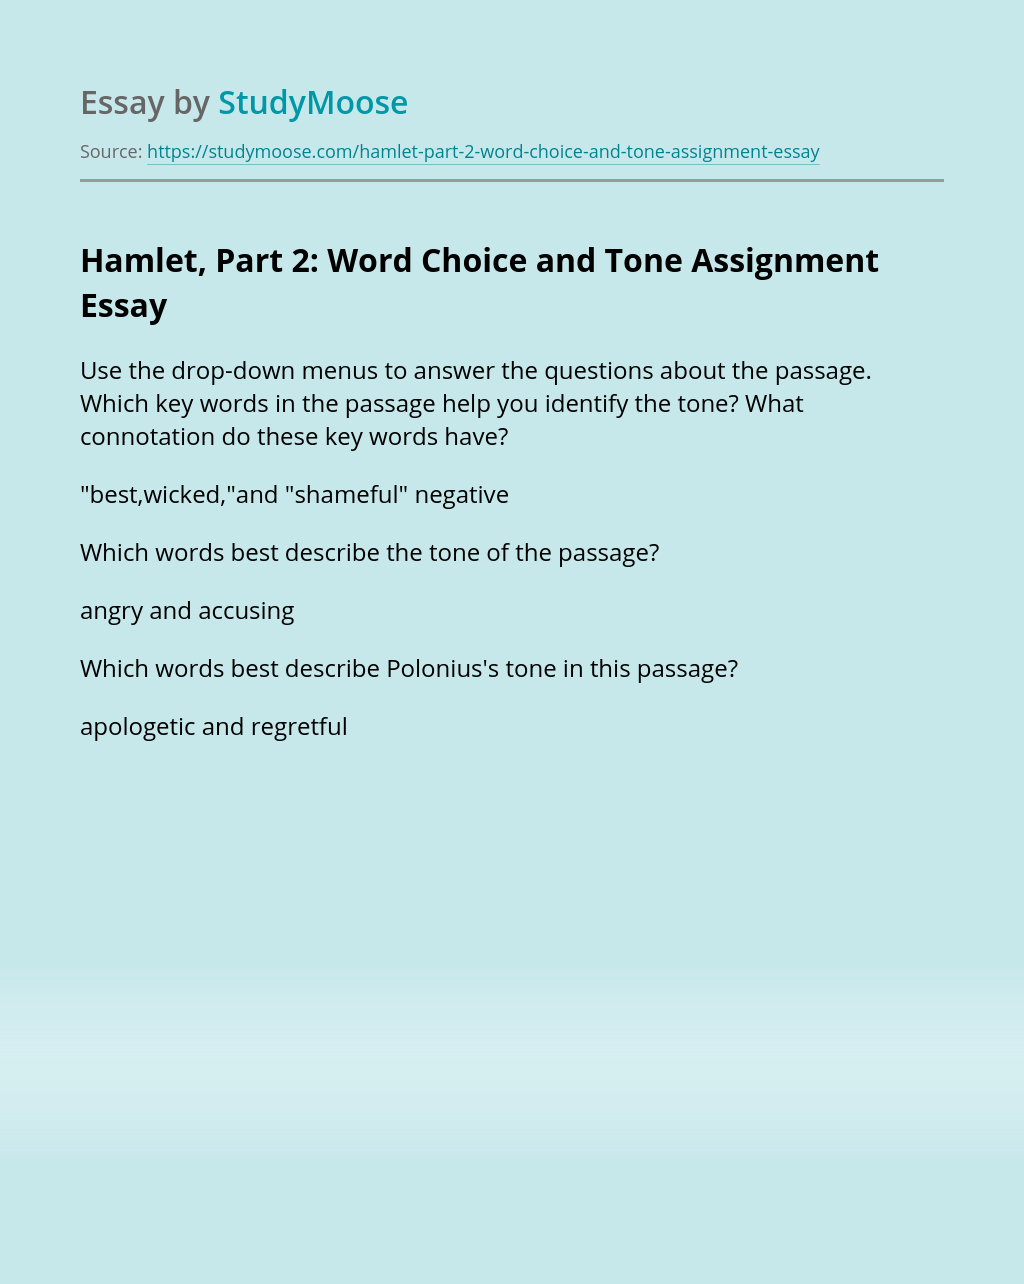 Hamlet, Part 2: Word Choice and Tone Assignment